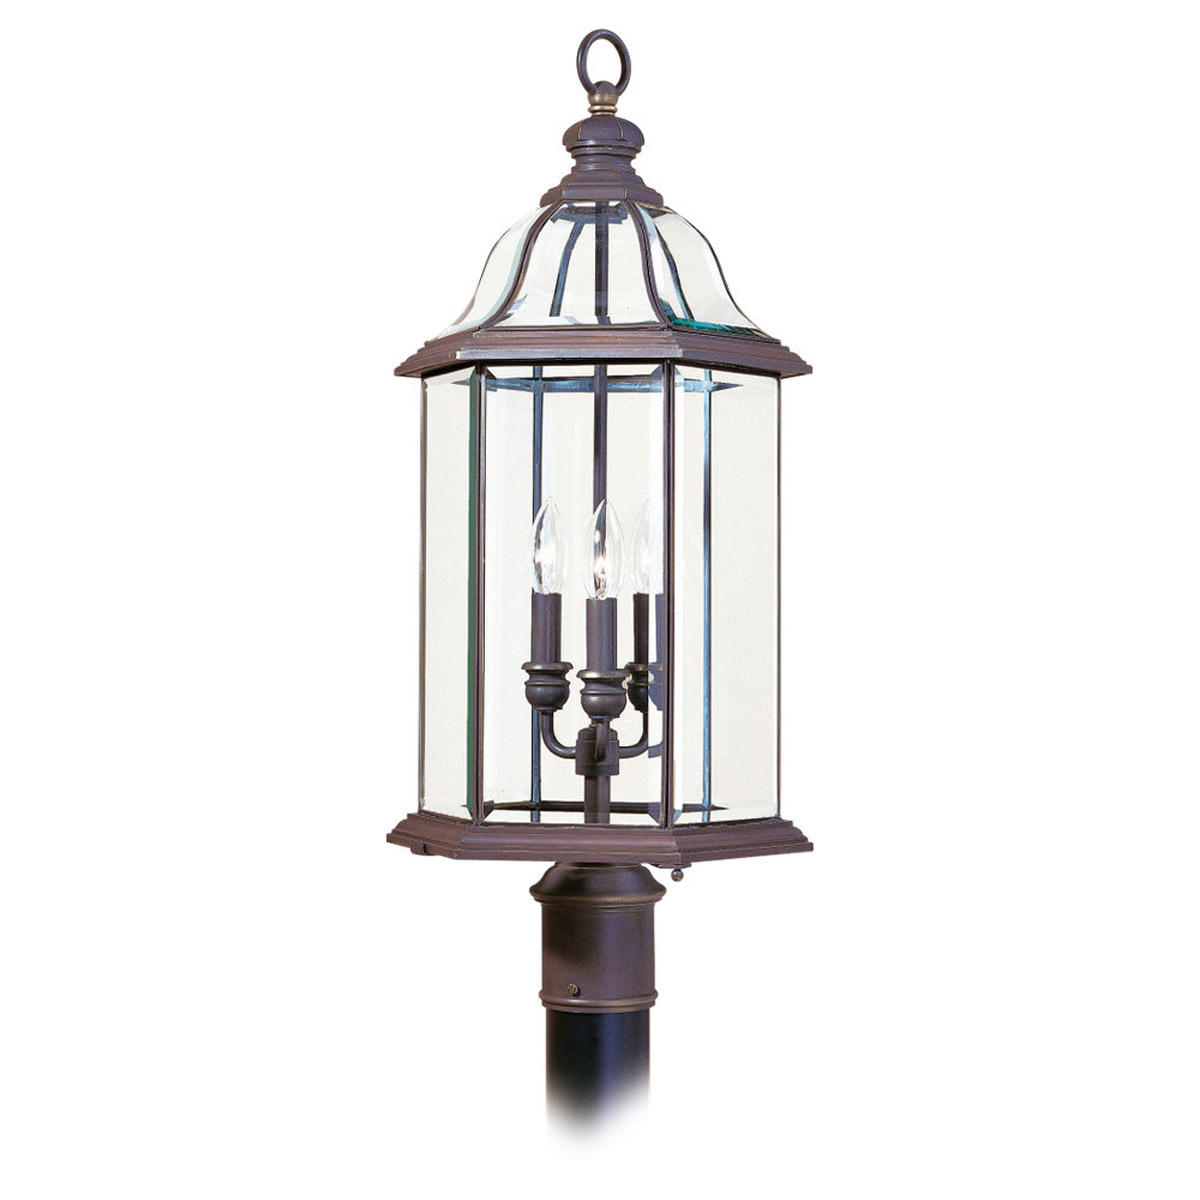 Sea Gull Lighting Barclay 3 Light Outdoor Post Lantern in Antique Bronze 8251-71 photo